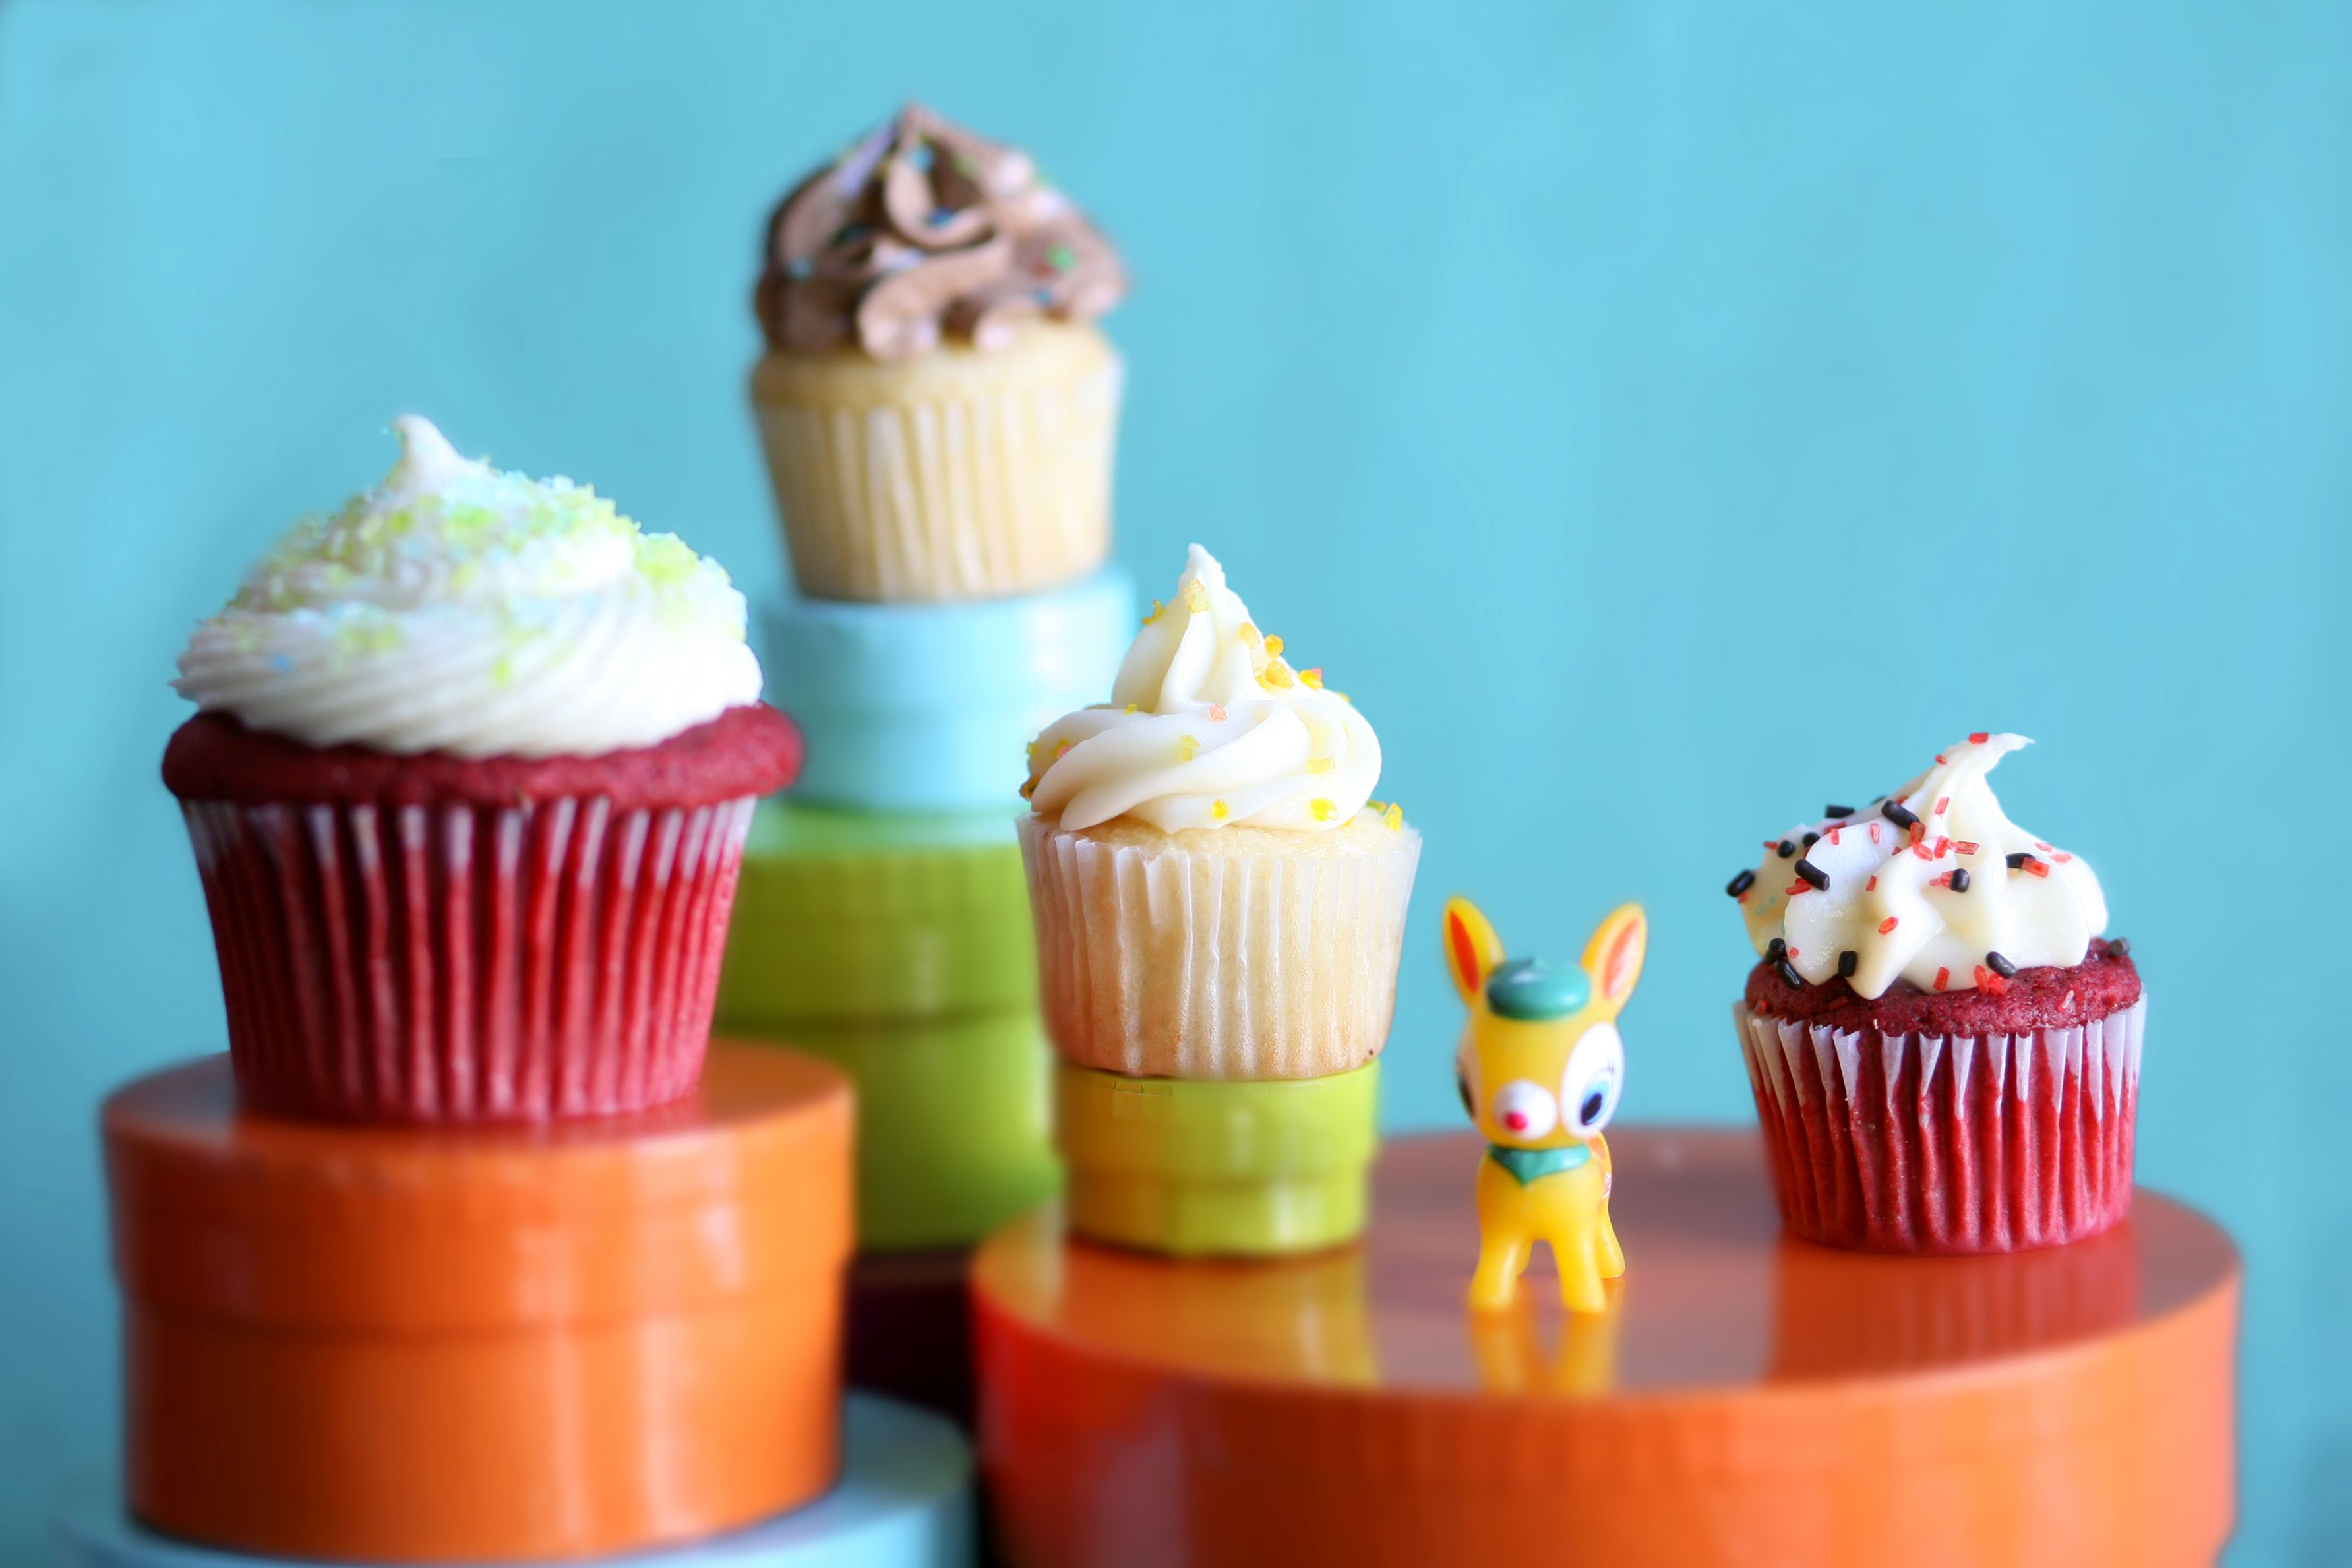 find out: cupcake hd photos wallpaper on http://hdpicorner